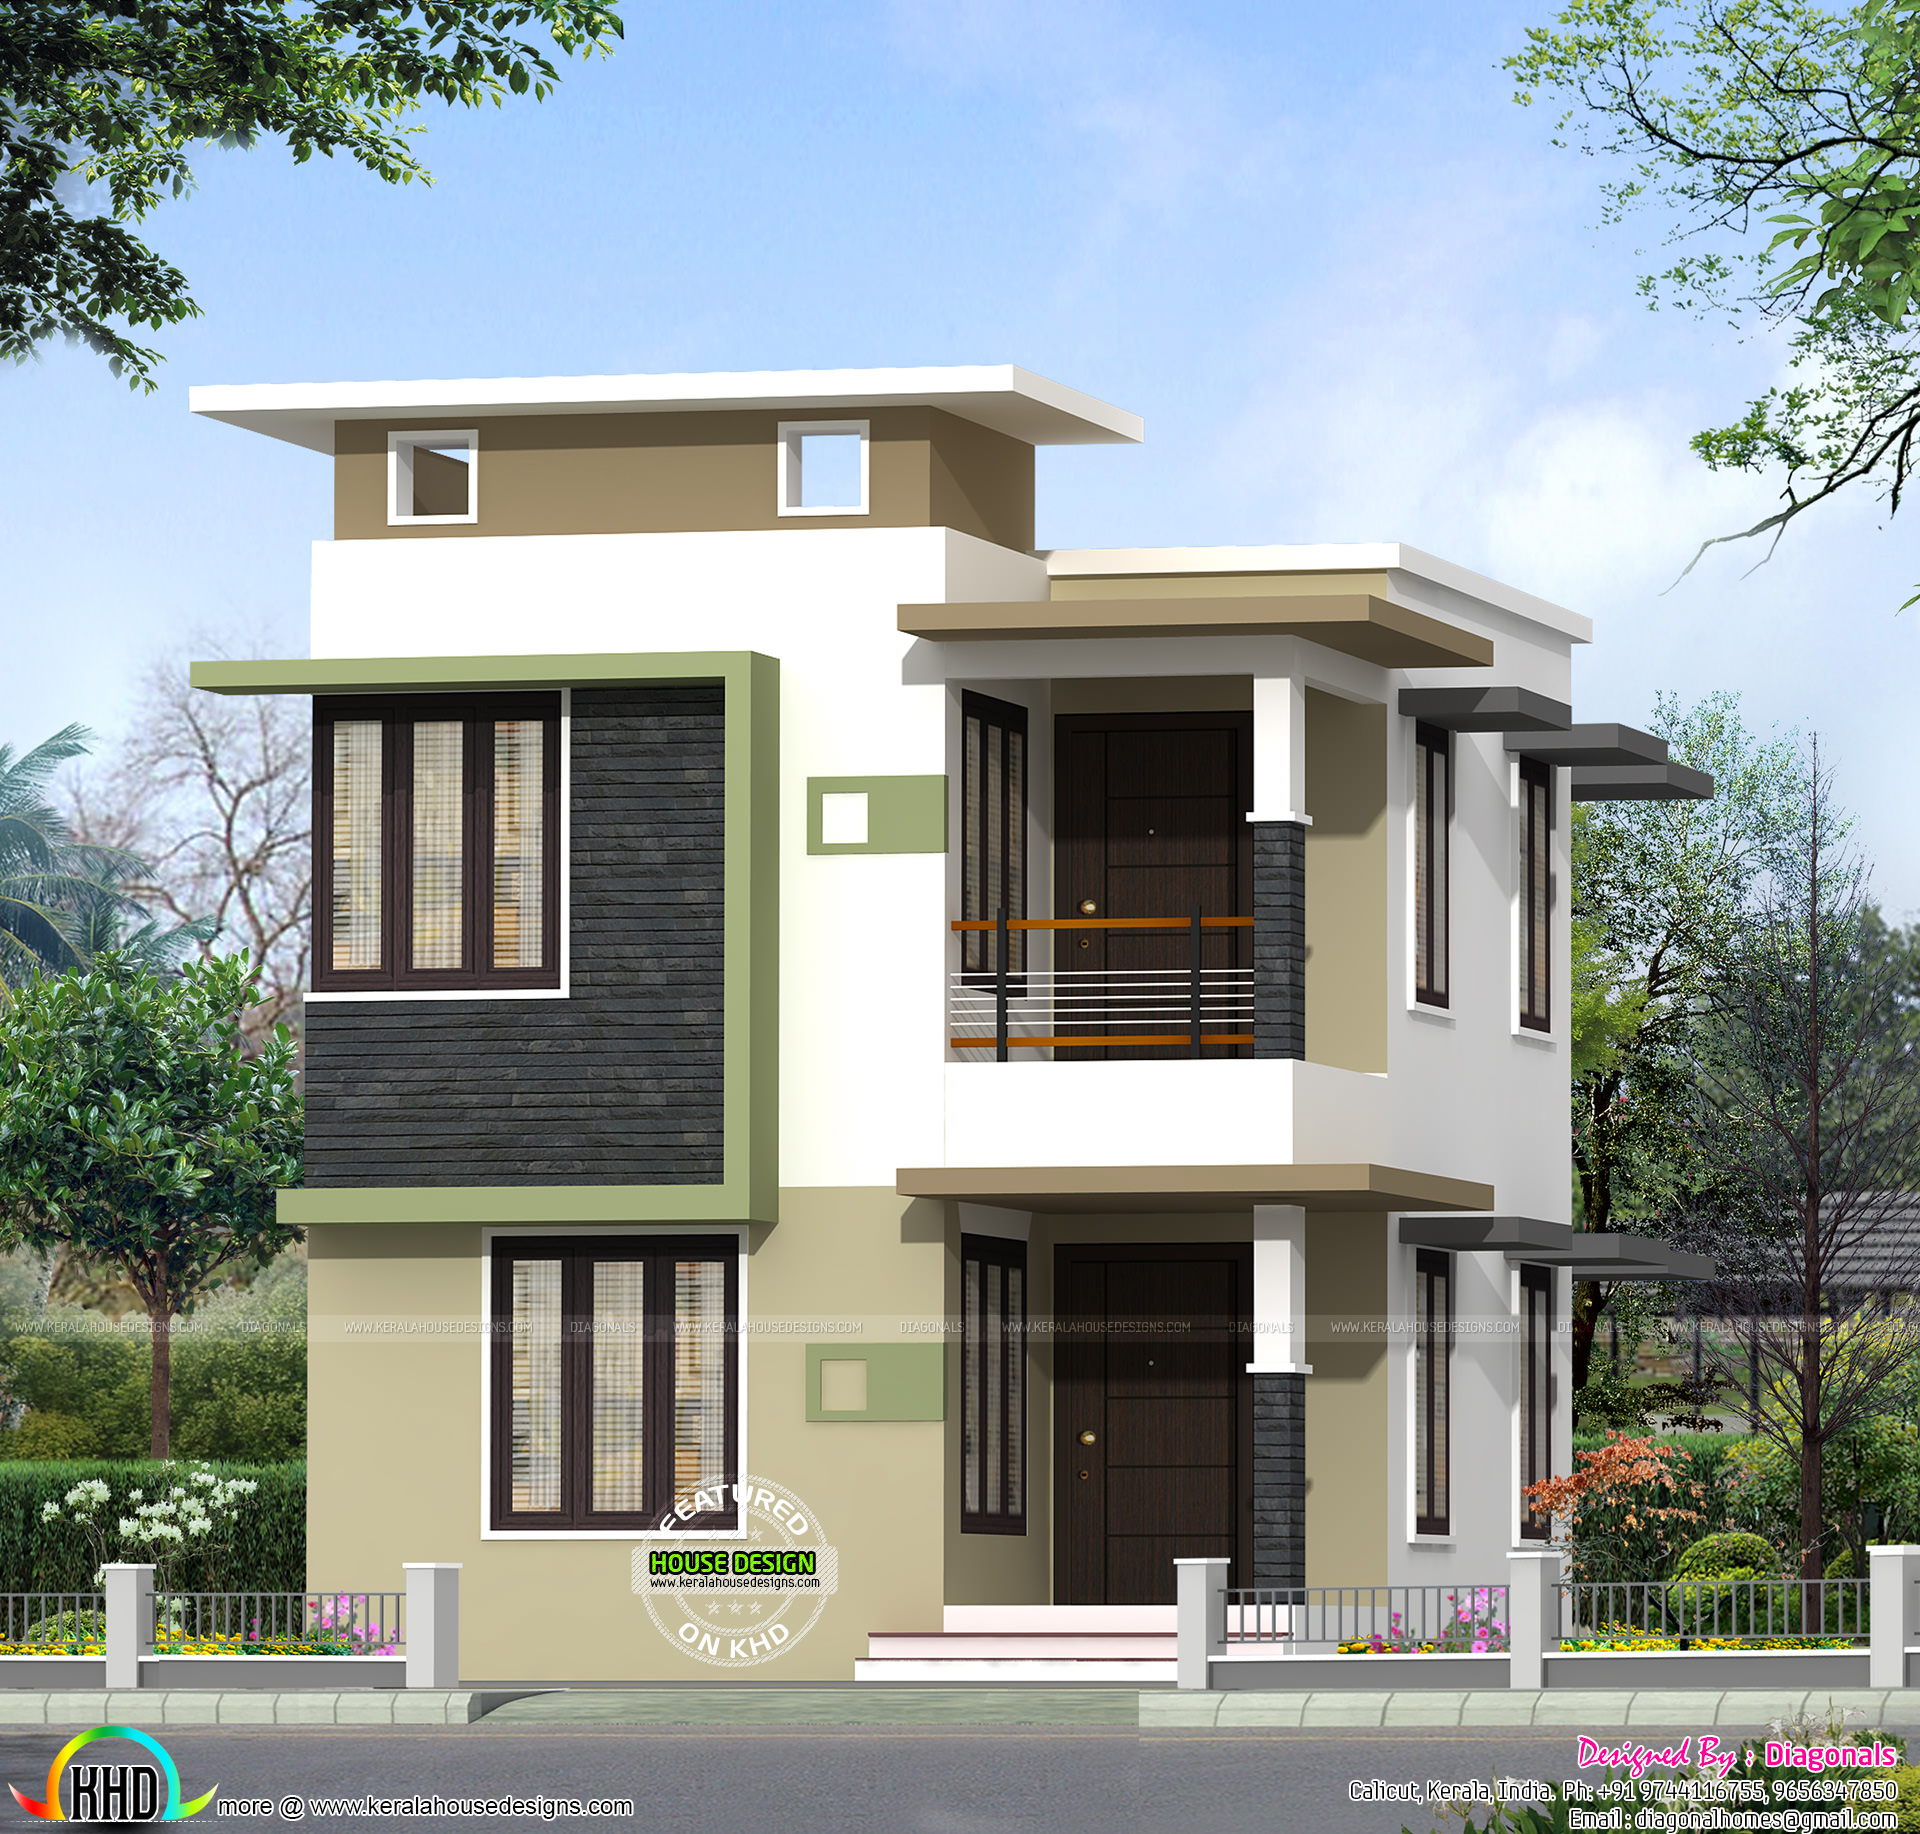 1631 sq ft budget flat roof home kerala home design and for Kerala home design flat roof elevation